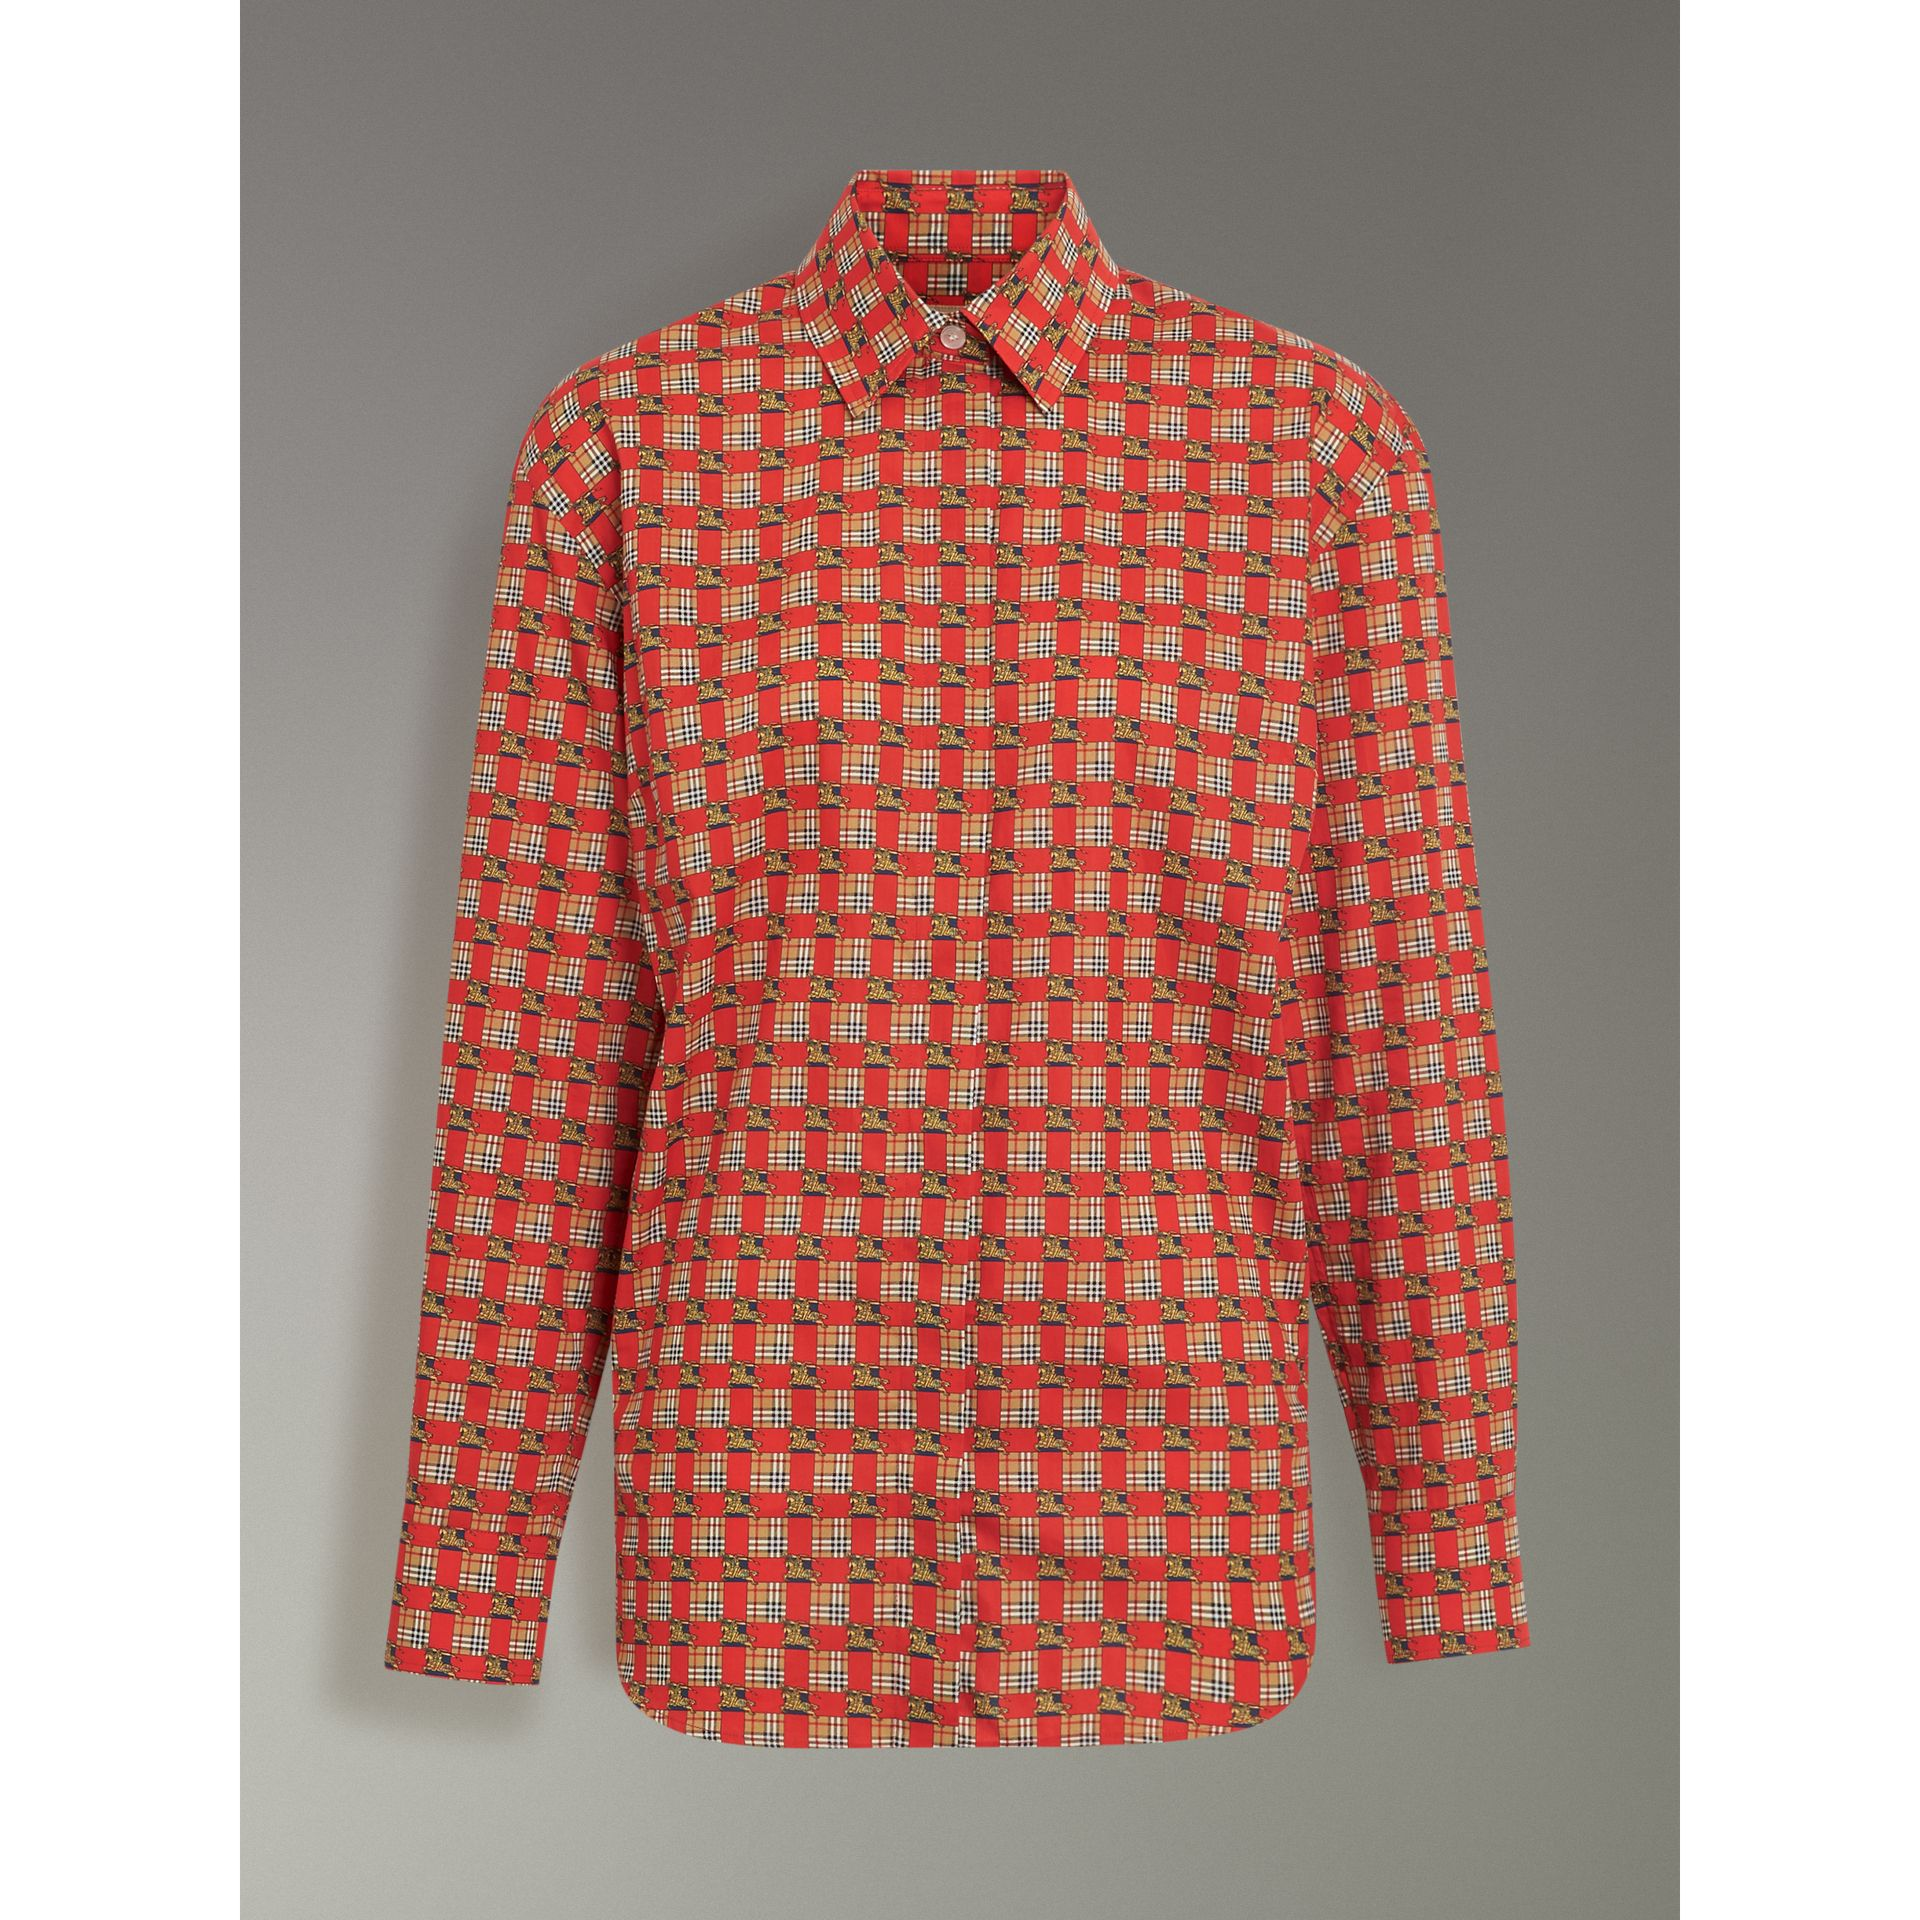 Tiled Archive Print Cotton Shirt in Bright Red - Women | Burberry Australia - gallery image 3